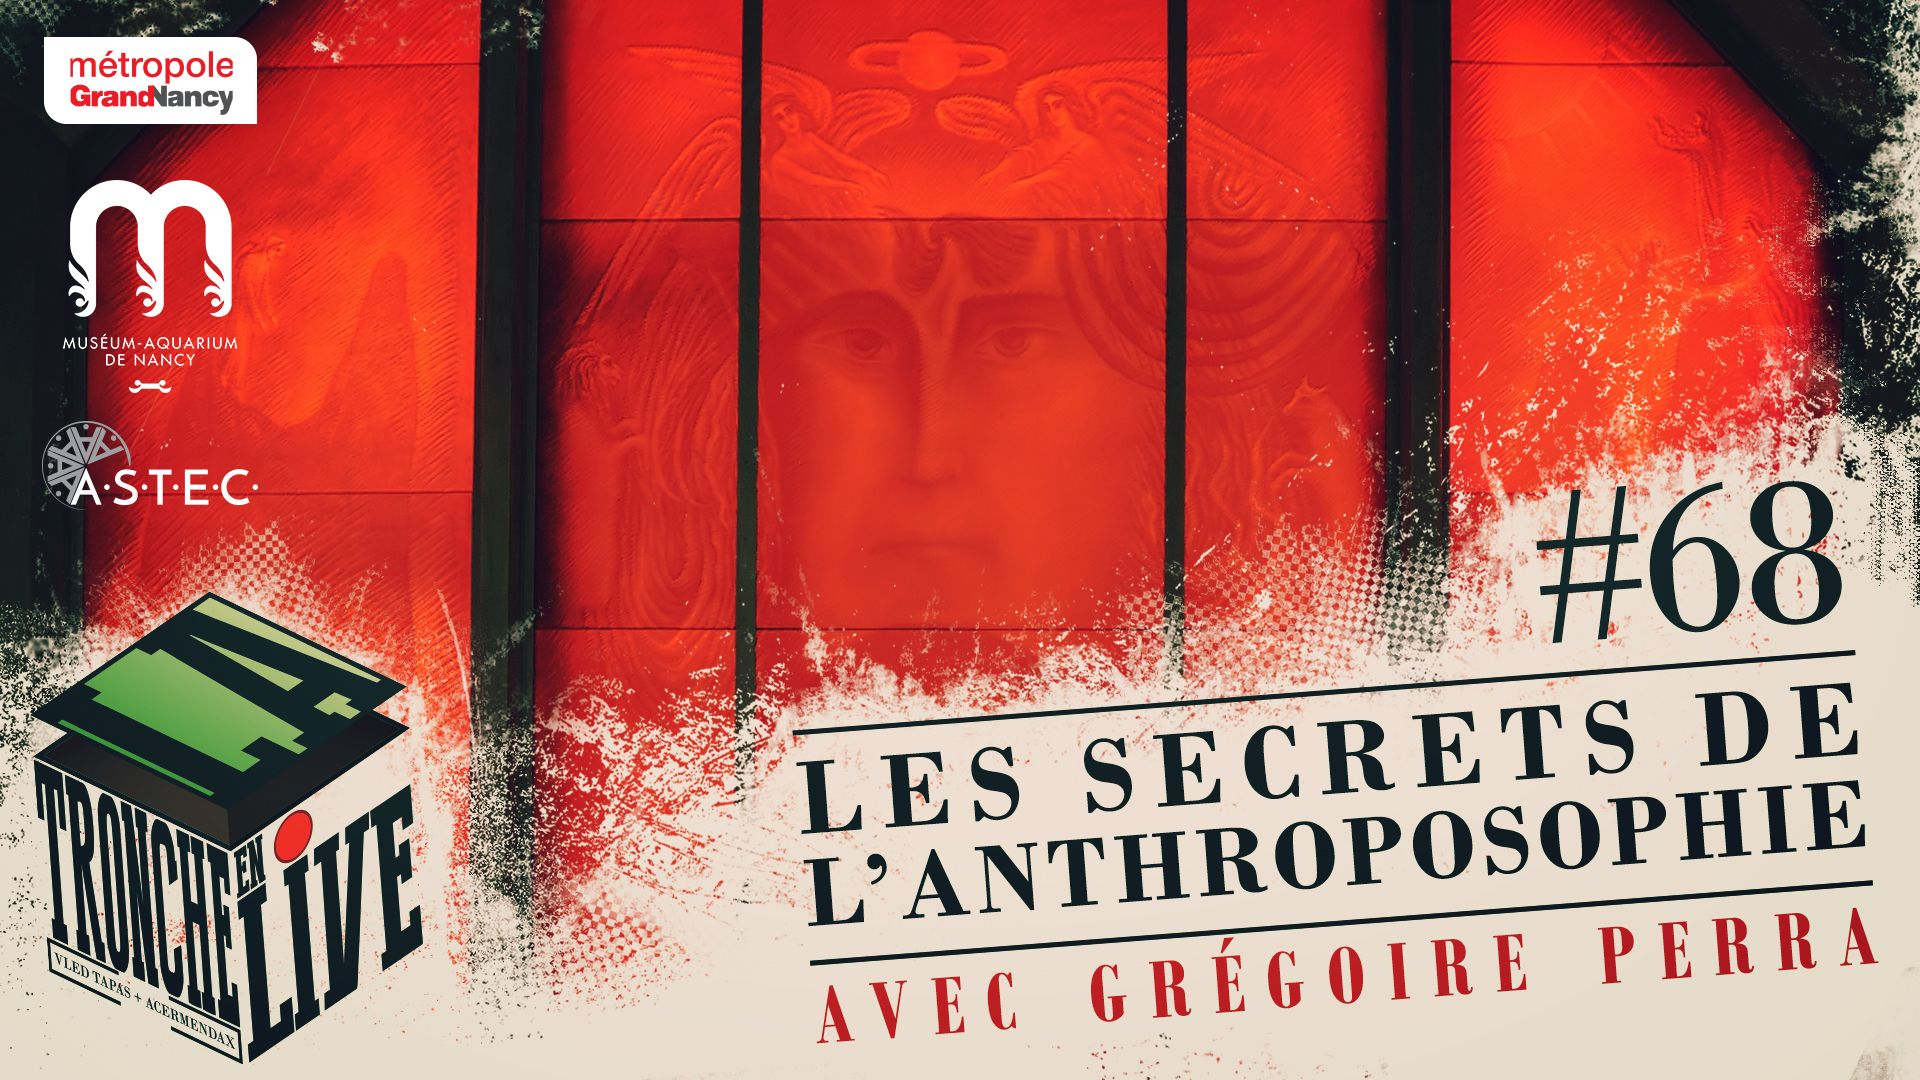 Les secrets de l'anthroposophie